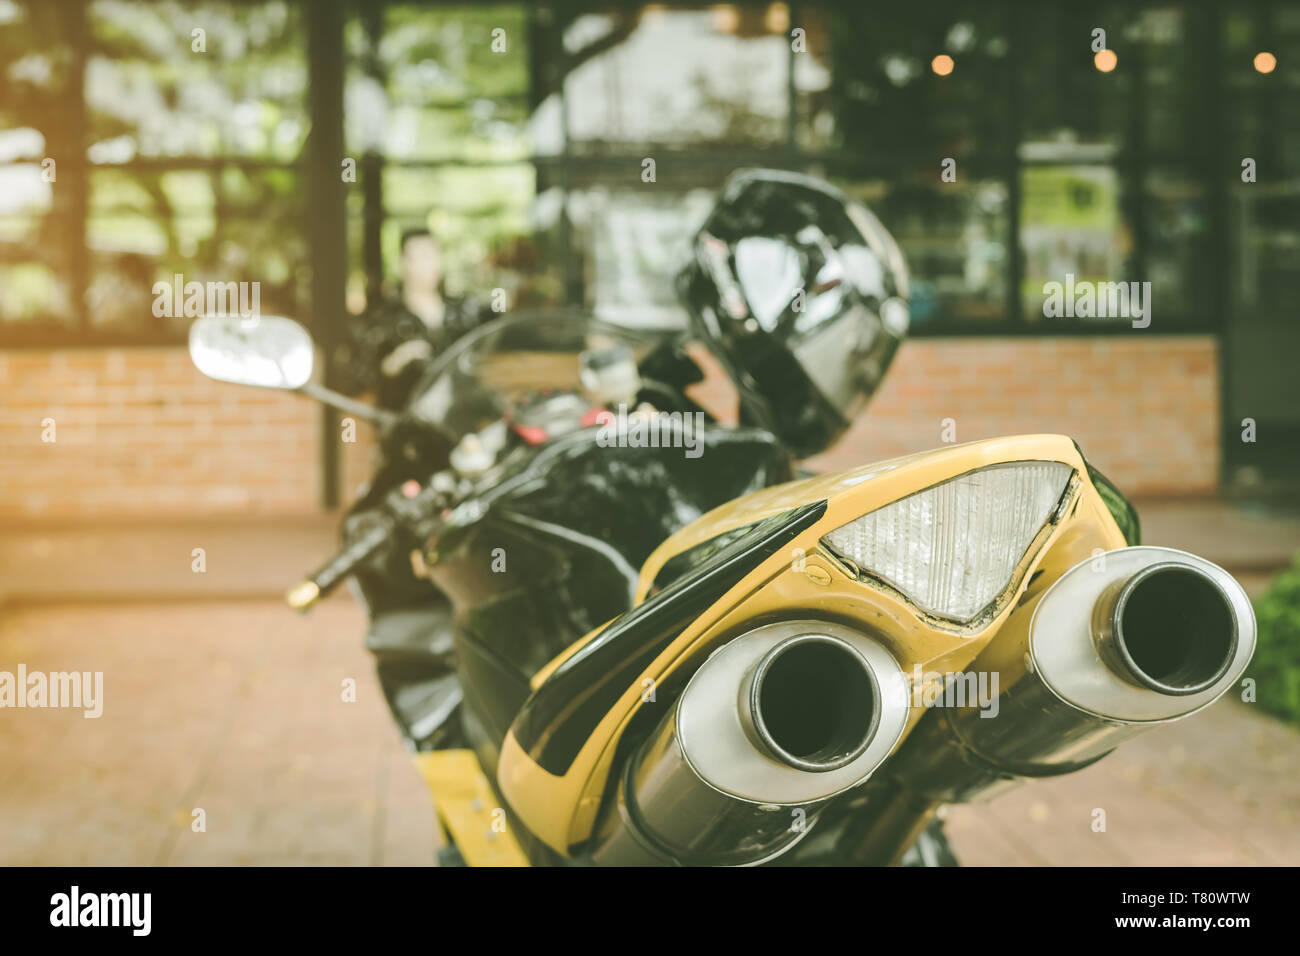 A sporty motorcycle parked in front of a coffee shop - Stock Image